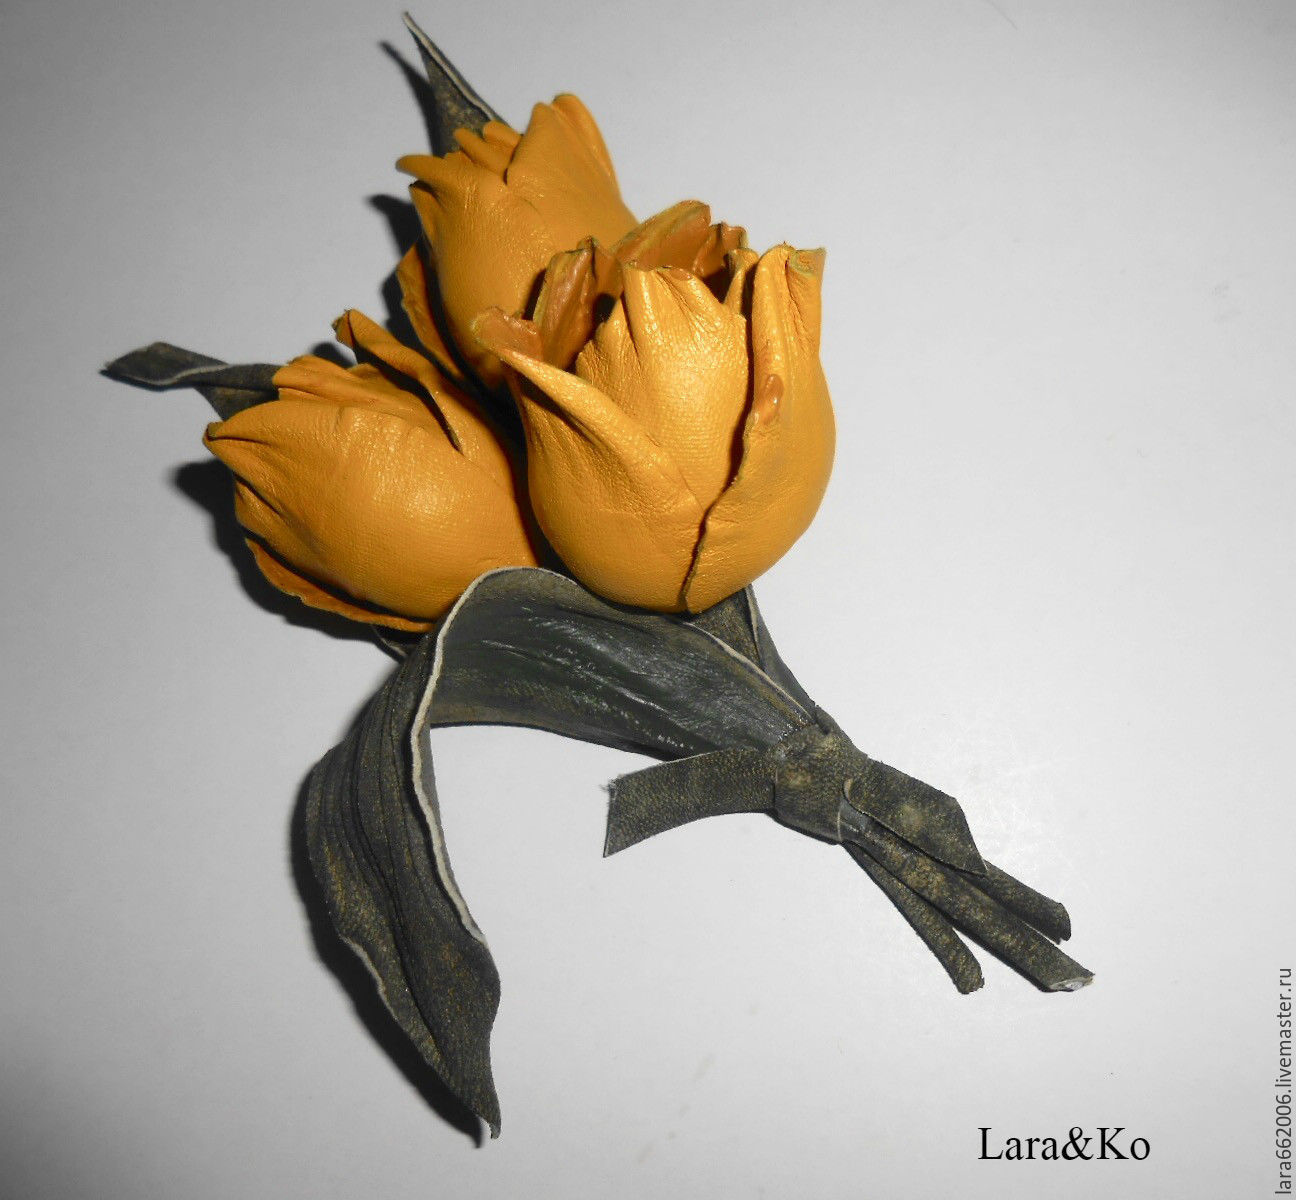 the decoration of leather,leather flowers,yellow tulips made of leather,leather jewelry,leather accessories,leather brooch,bouquet of tulips,handmade flowers,leather flowers decorative bouquet